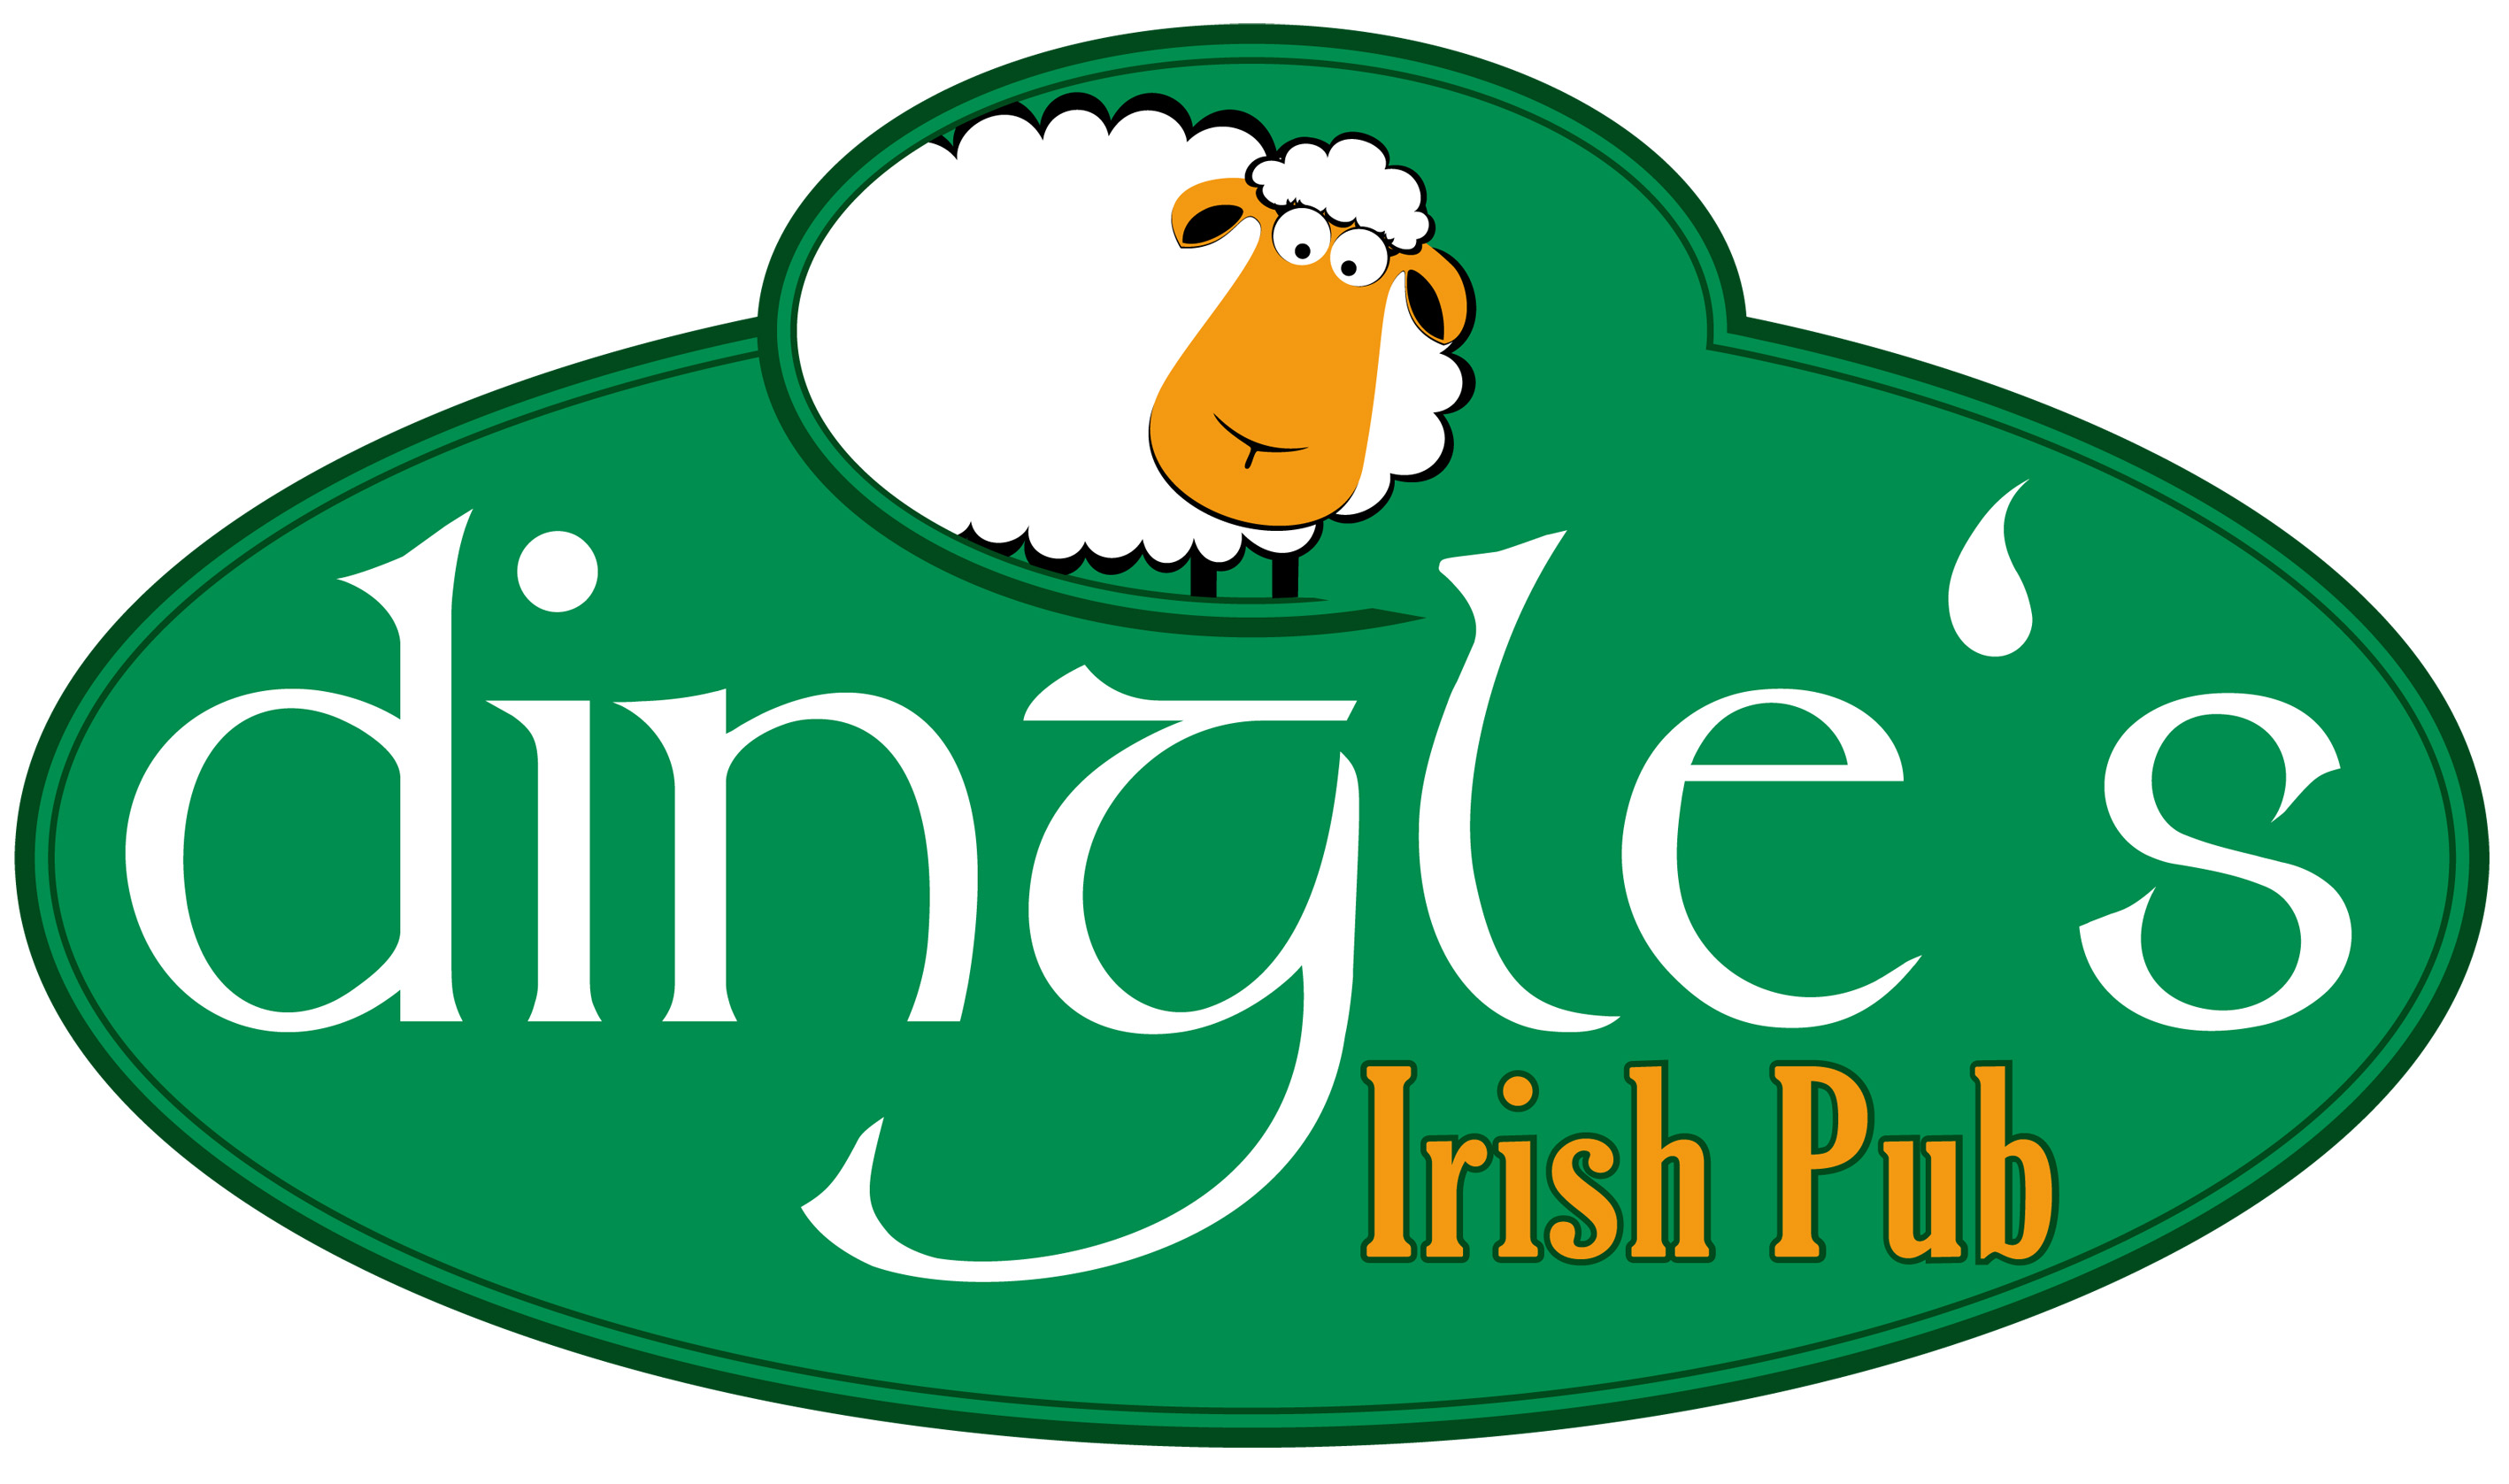 Irish Pub Dingle´s